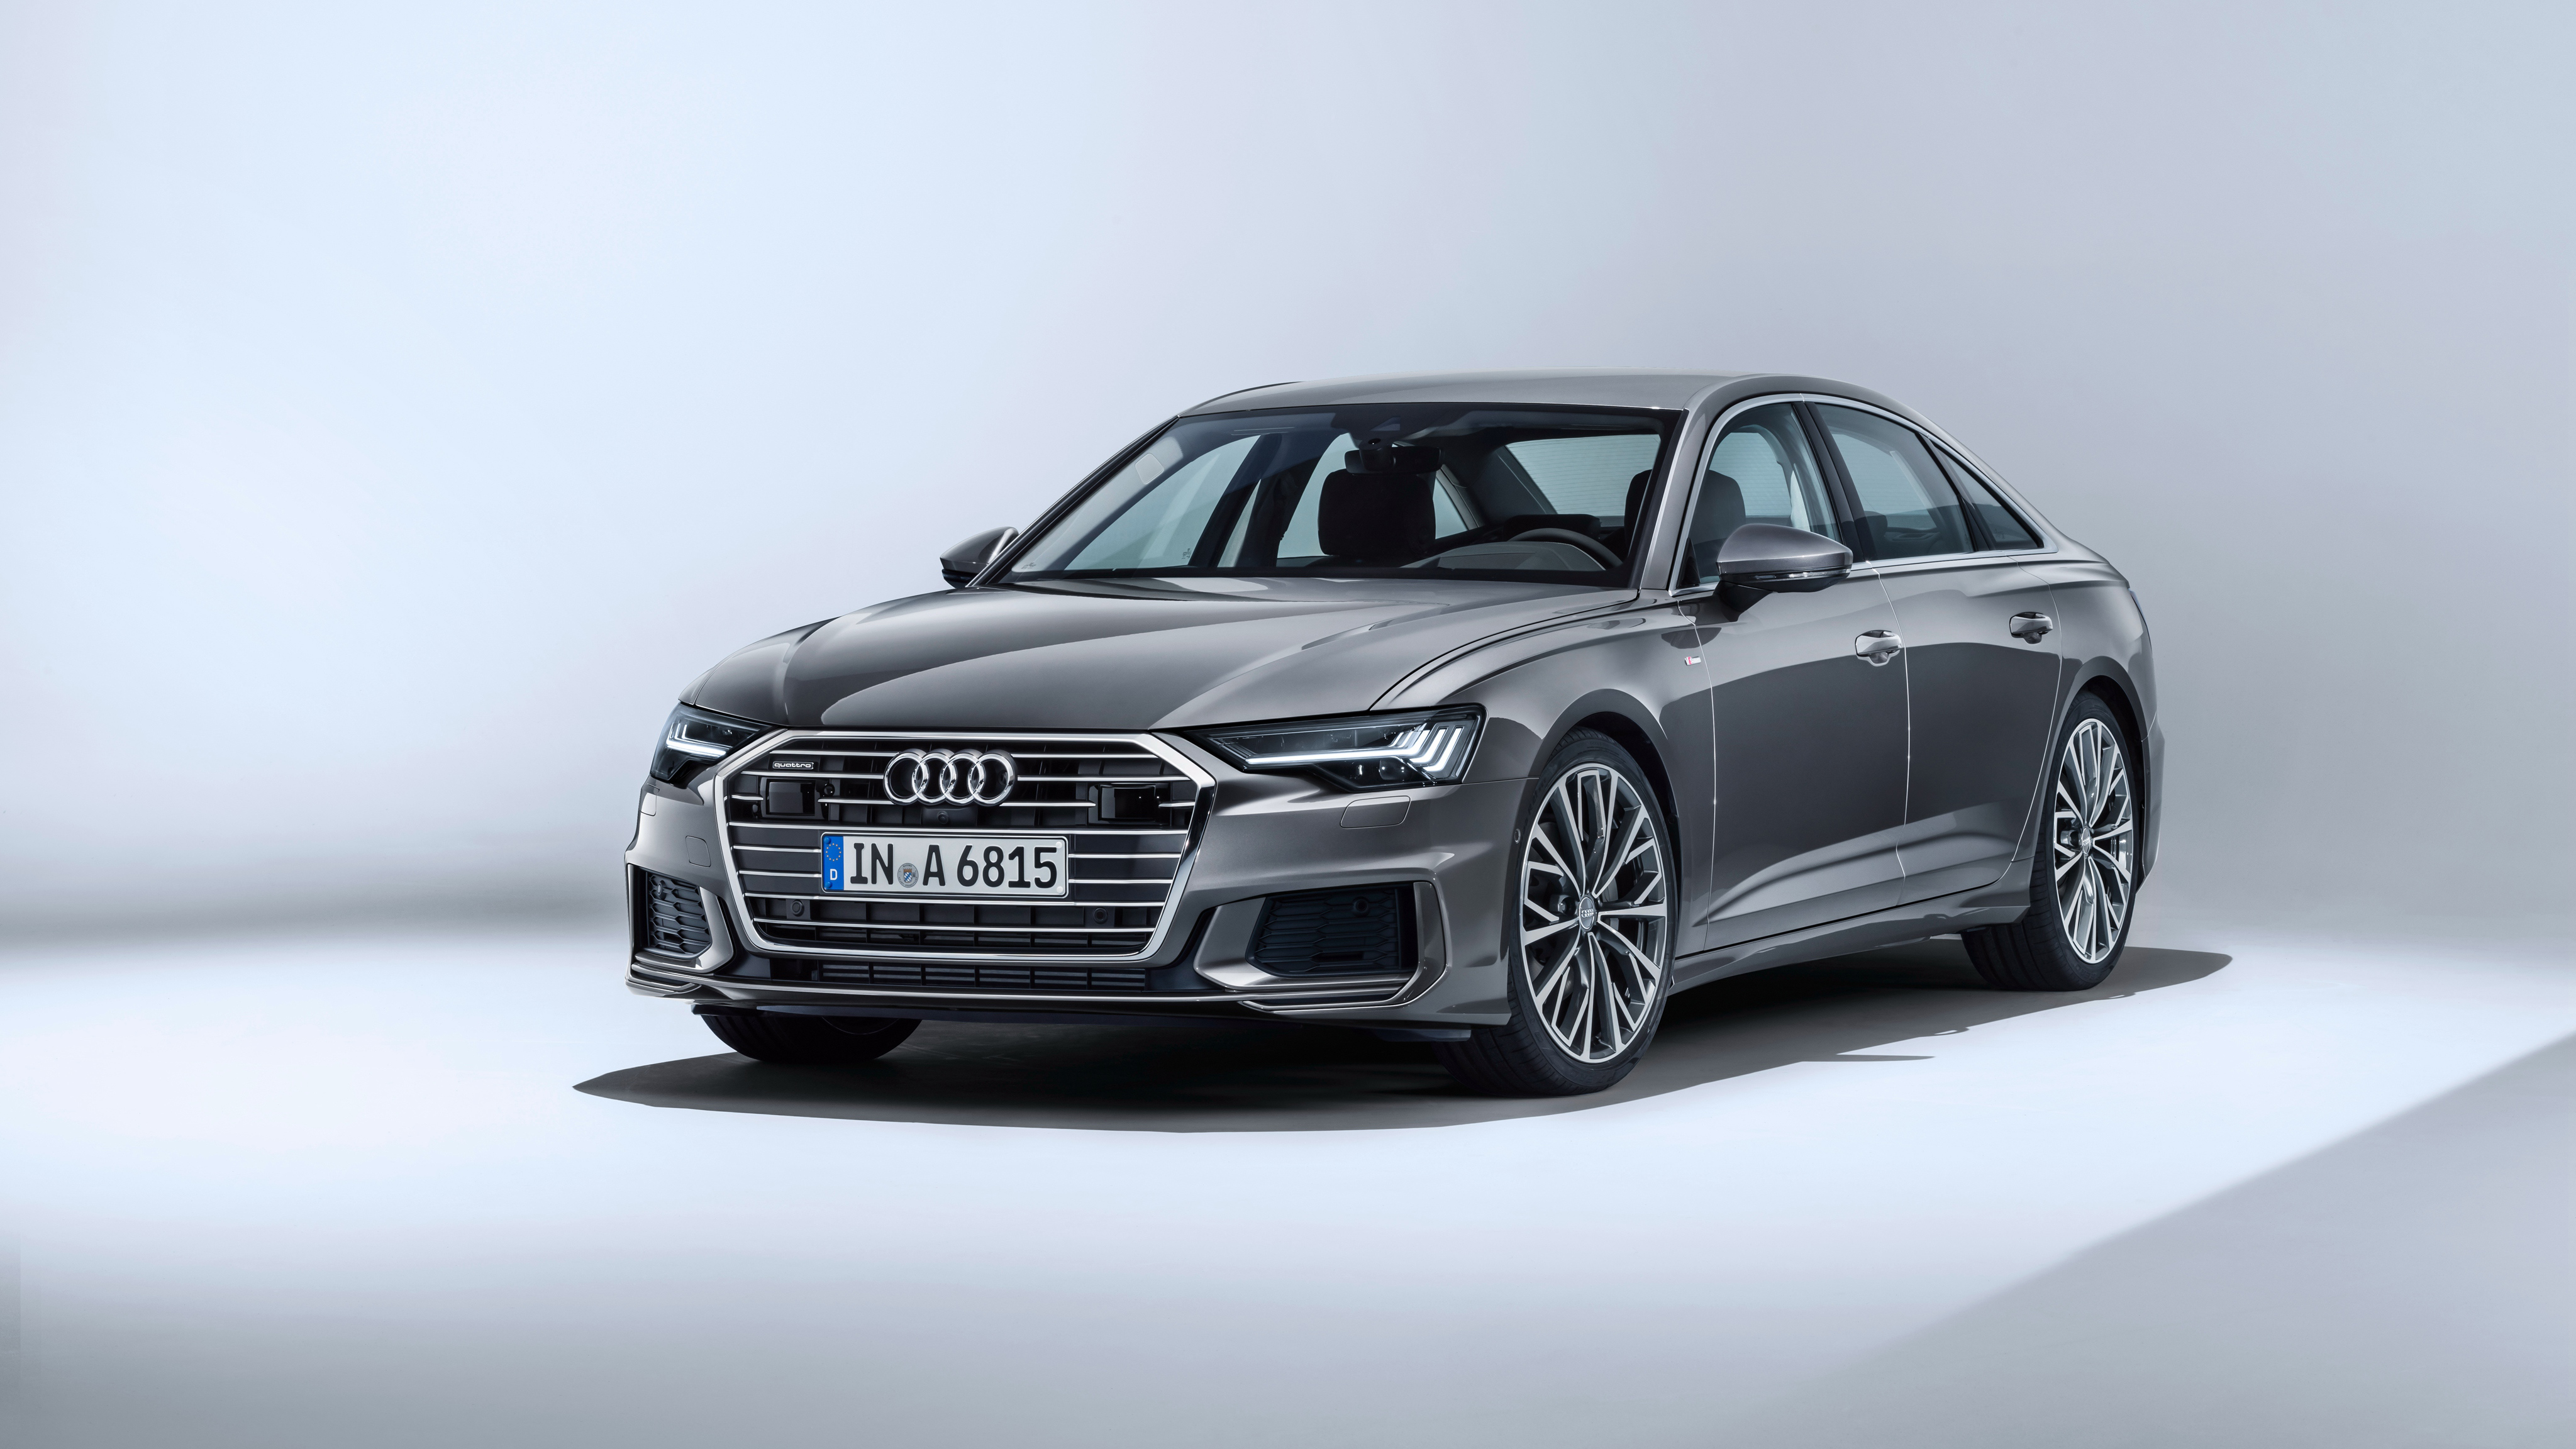 2018 audi a6 50 tdi quattro s line 4k 2 wallpaper hd car wallpapers id 9769. Black Bedroom Furniture Sets. Home Design Ideas